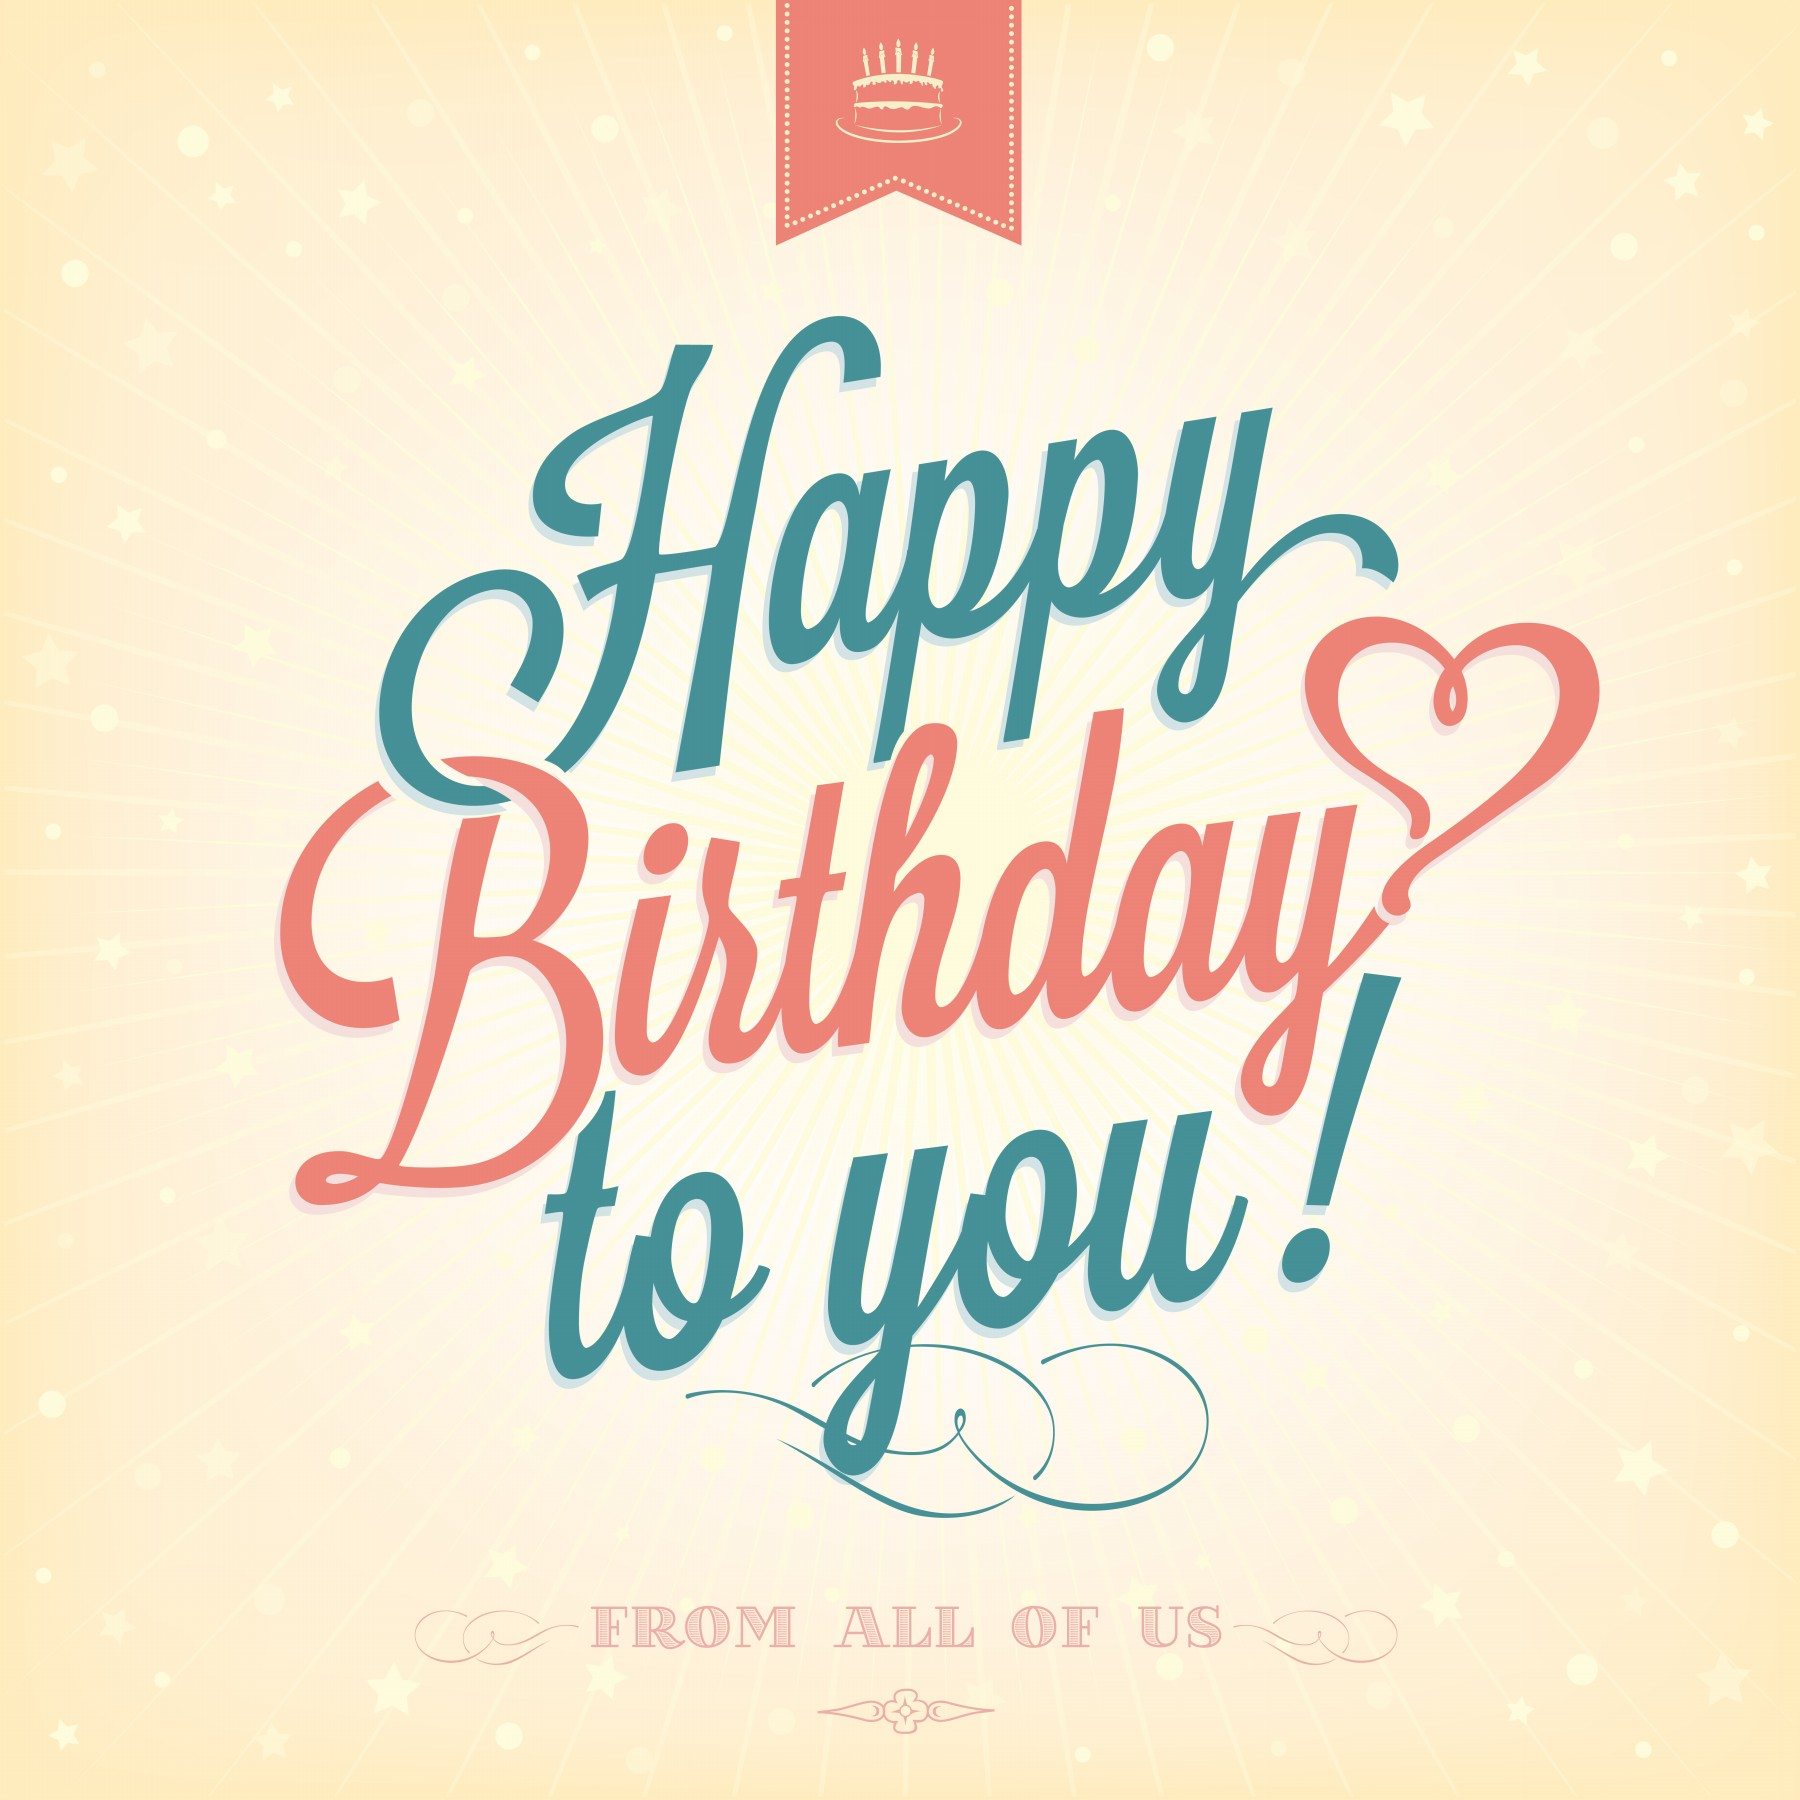 20 Creative Birthday cards for your friend – StudentsChillOut